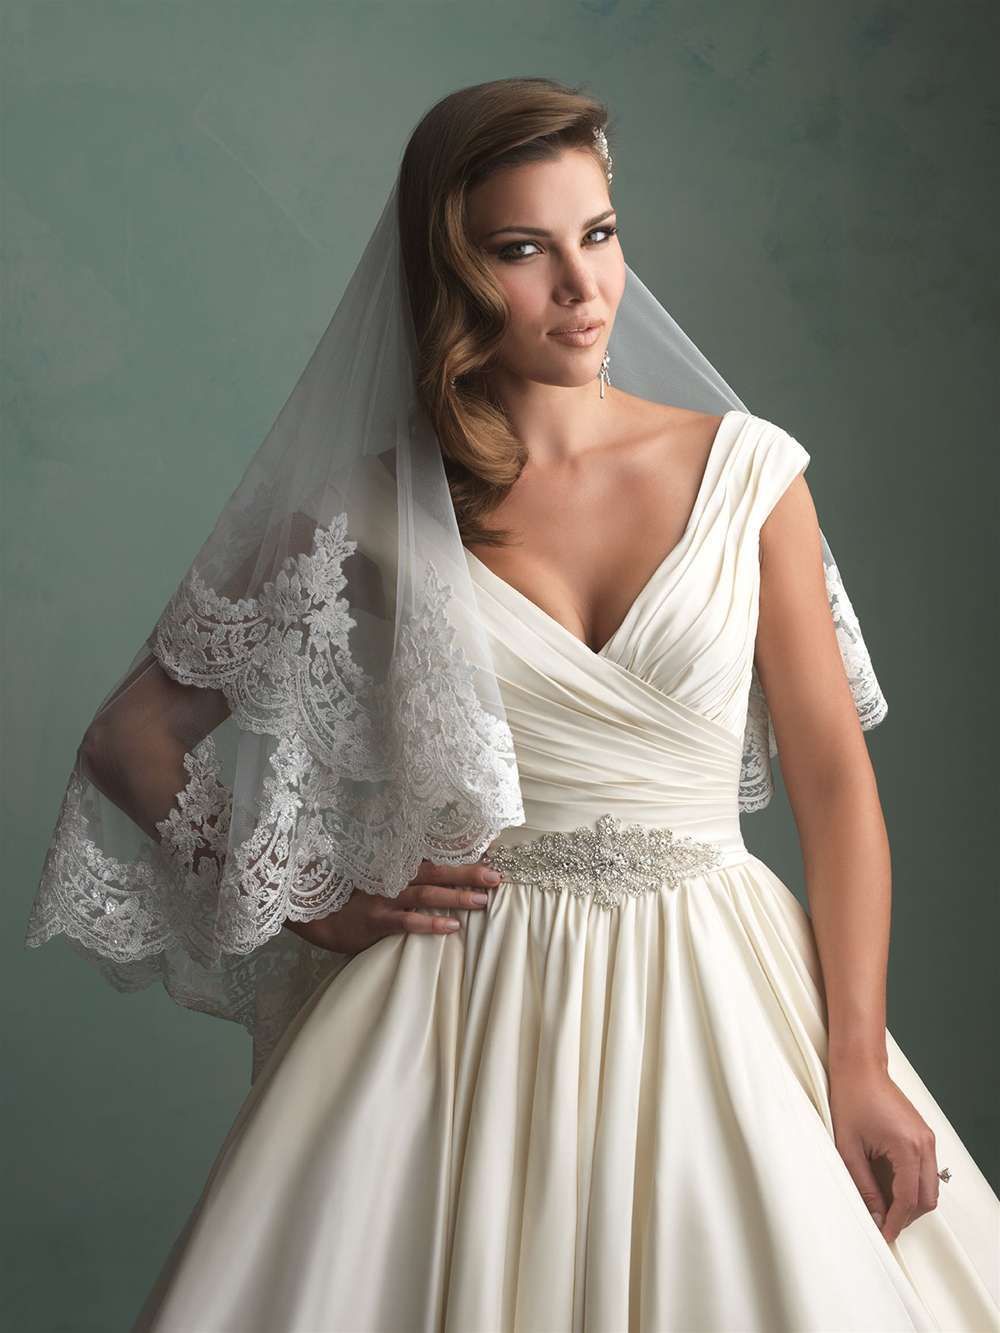 Velo in pizzo francese Allure Bridals